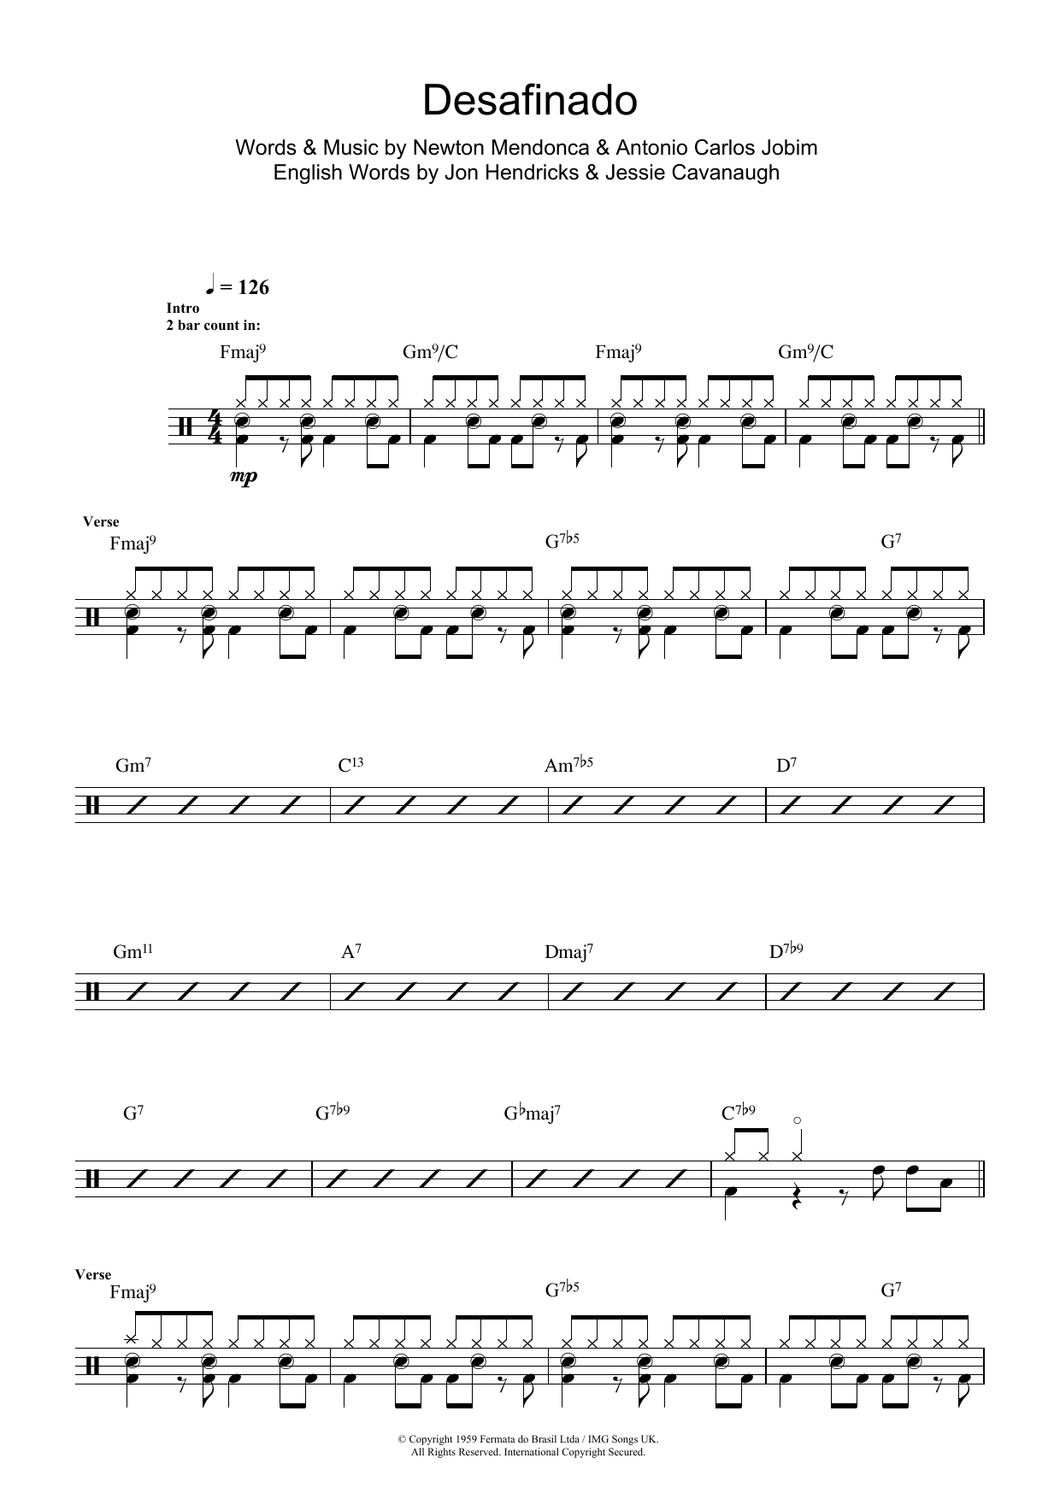 Desafinado (Slightly Out Of Tune) - Antonio Carlos Jobim - Full Drum Transcription / Drum Sheet Music - SheetMusicDirect D